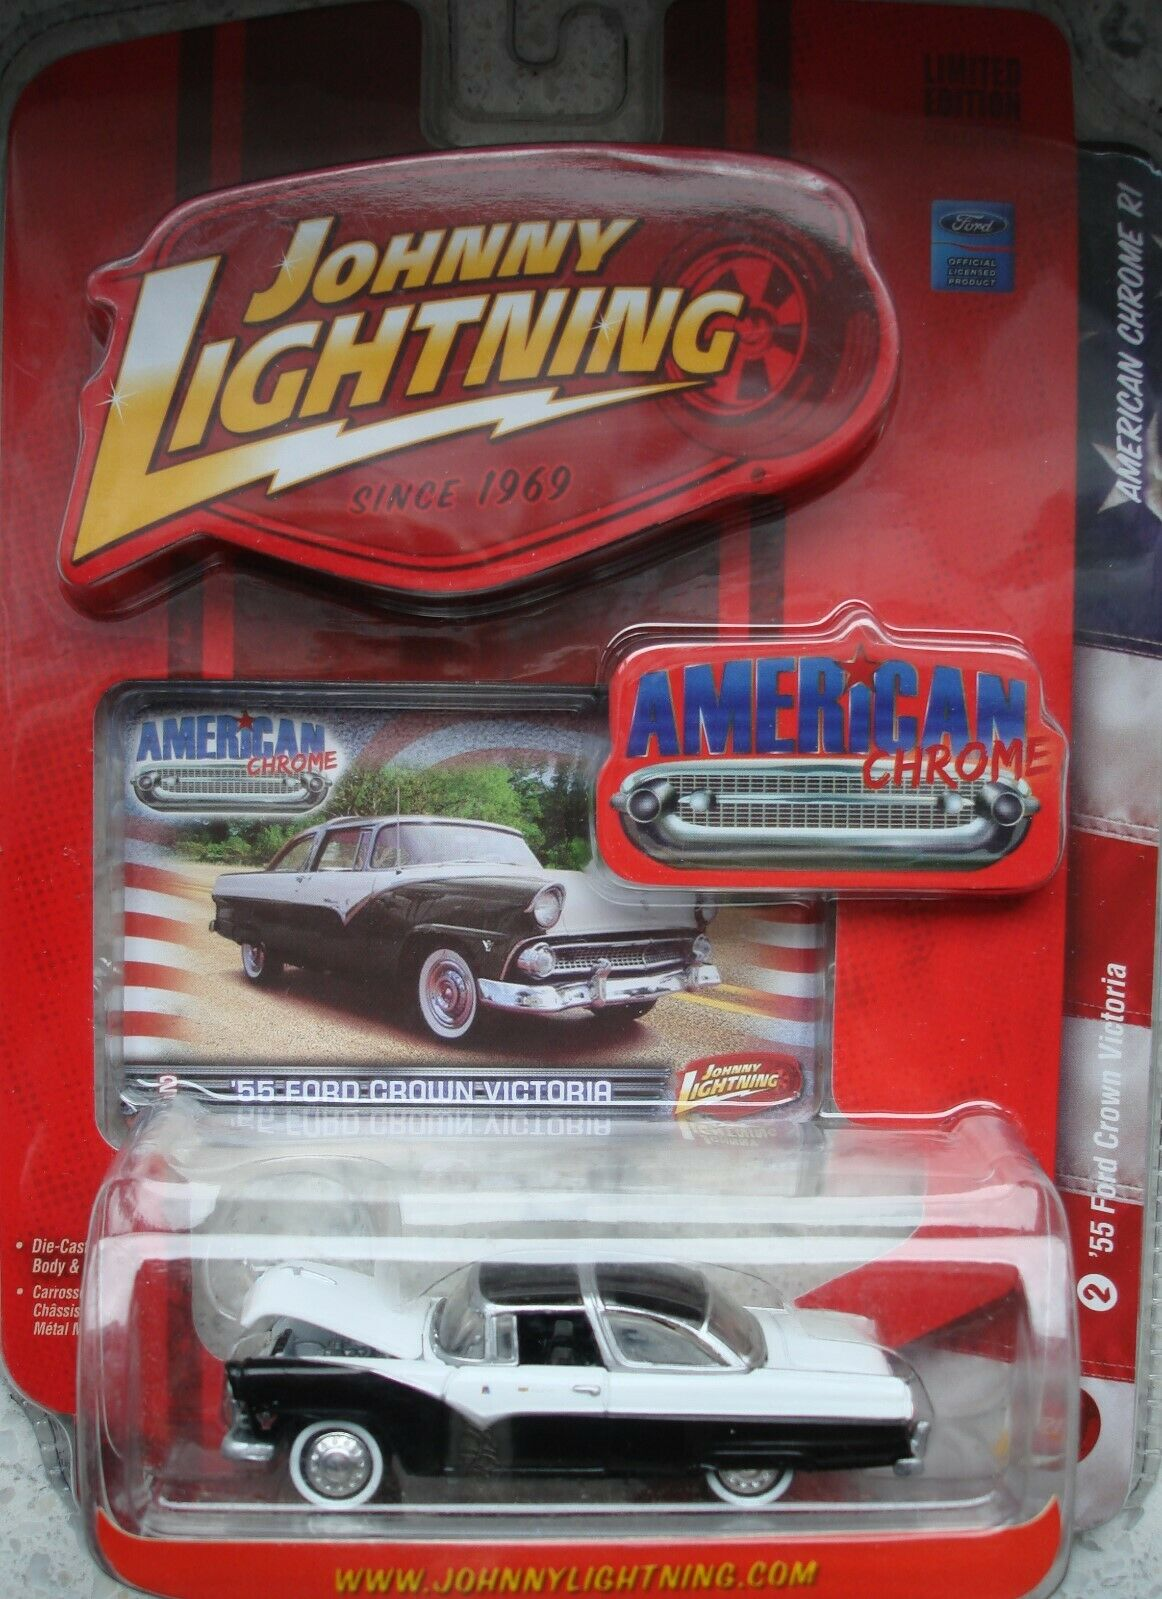 '55 FORD Crown Victoria - JOHNNY LIGHTNING AMERICAN CHROME R1 -OVP-    Discount